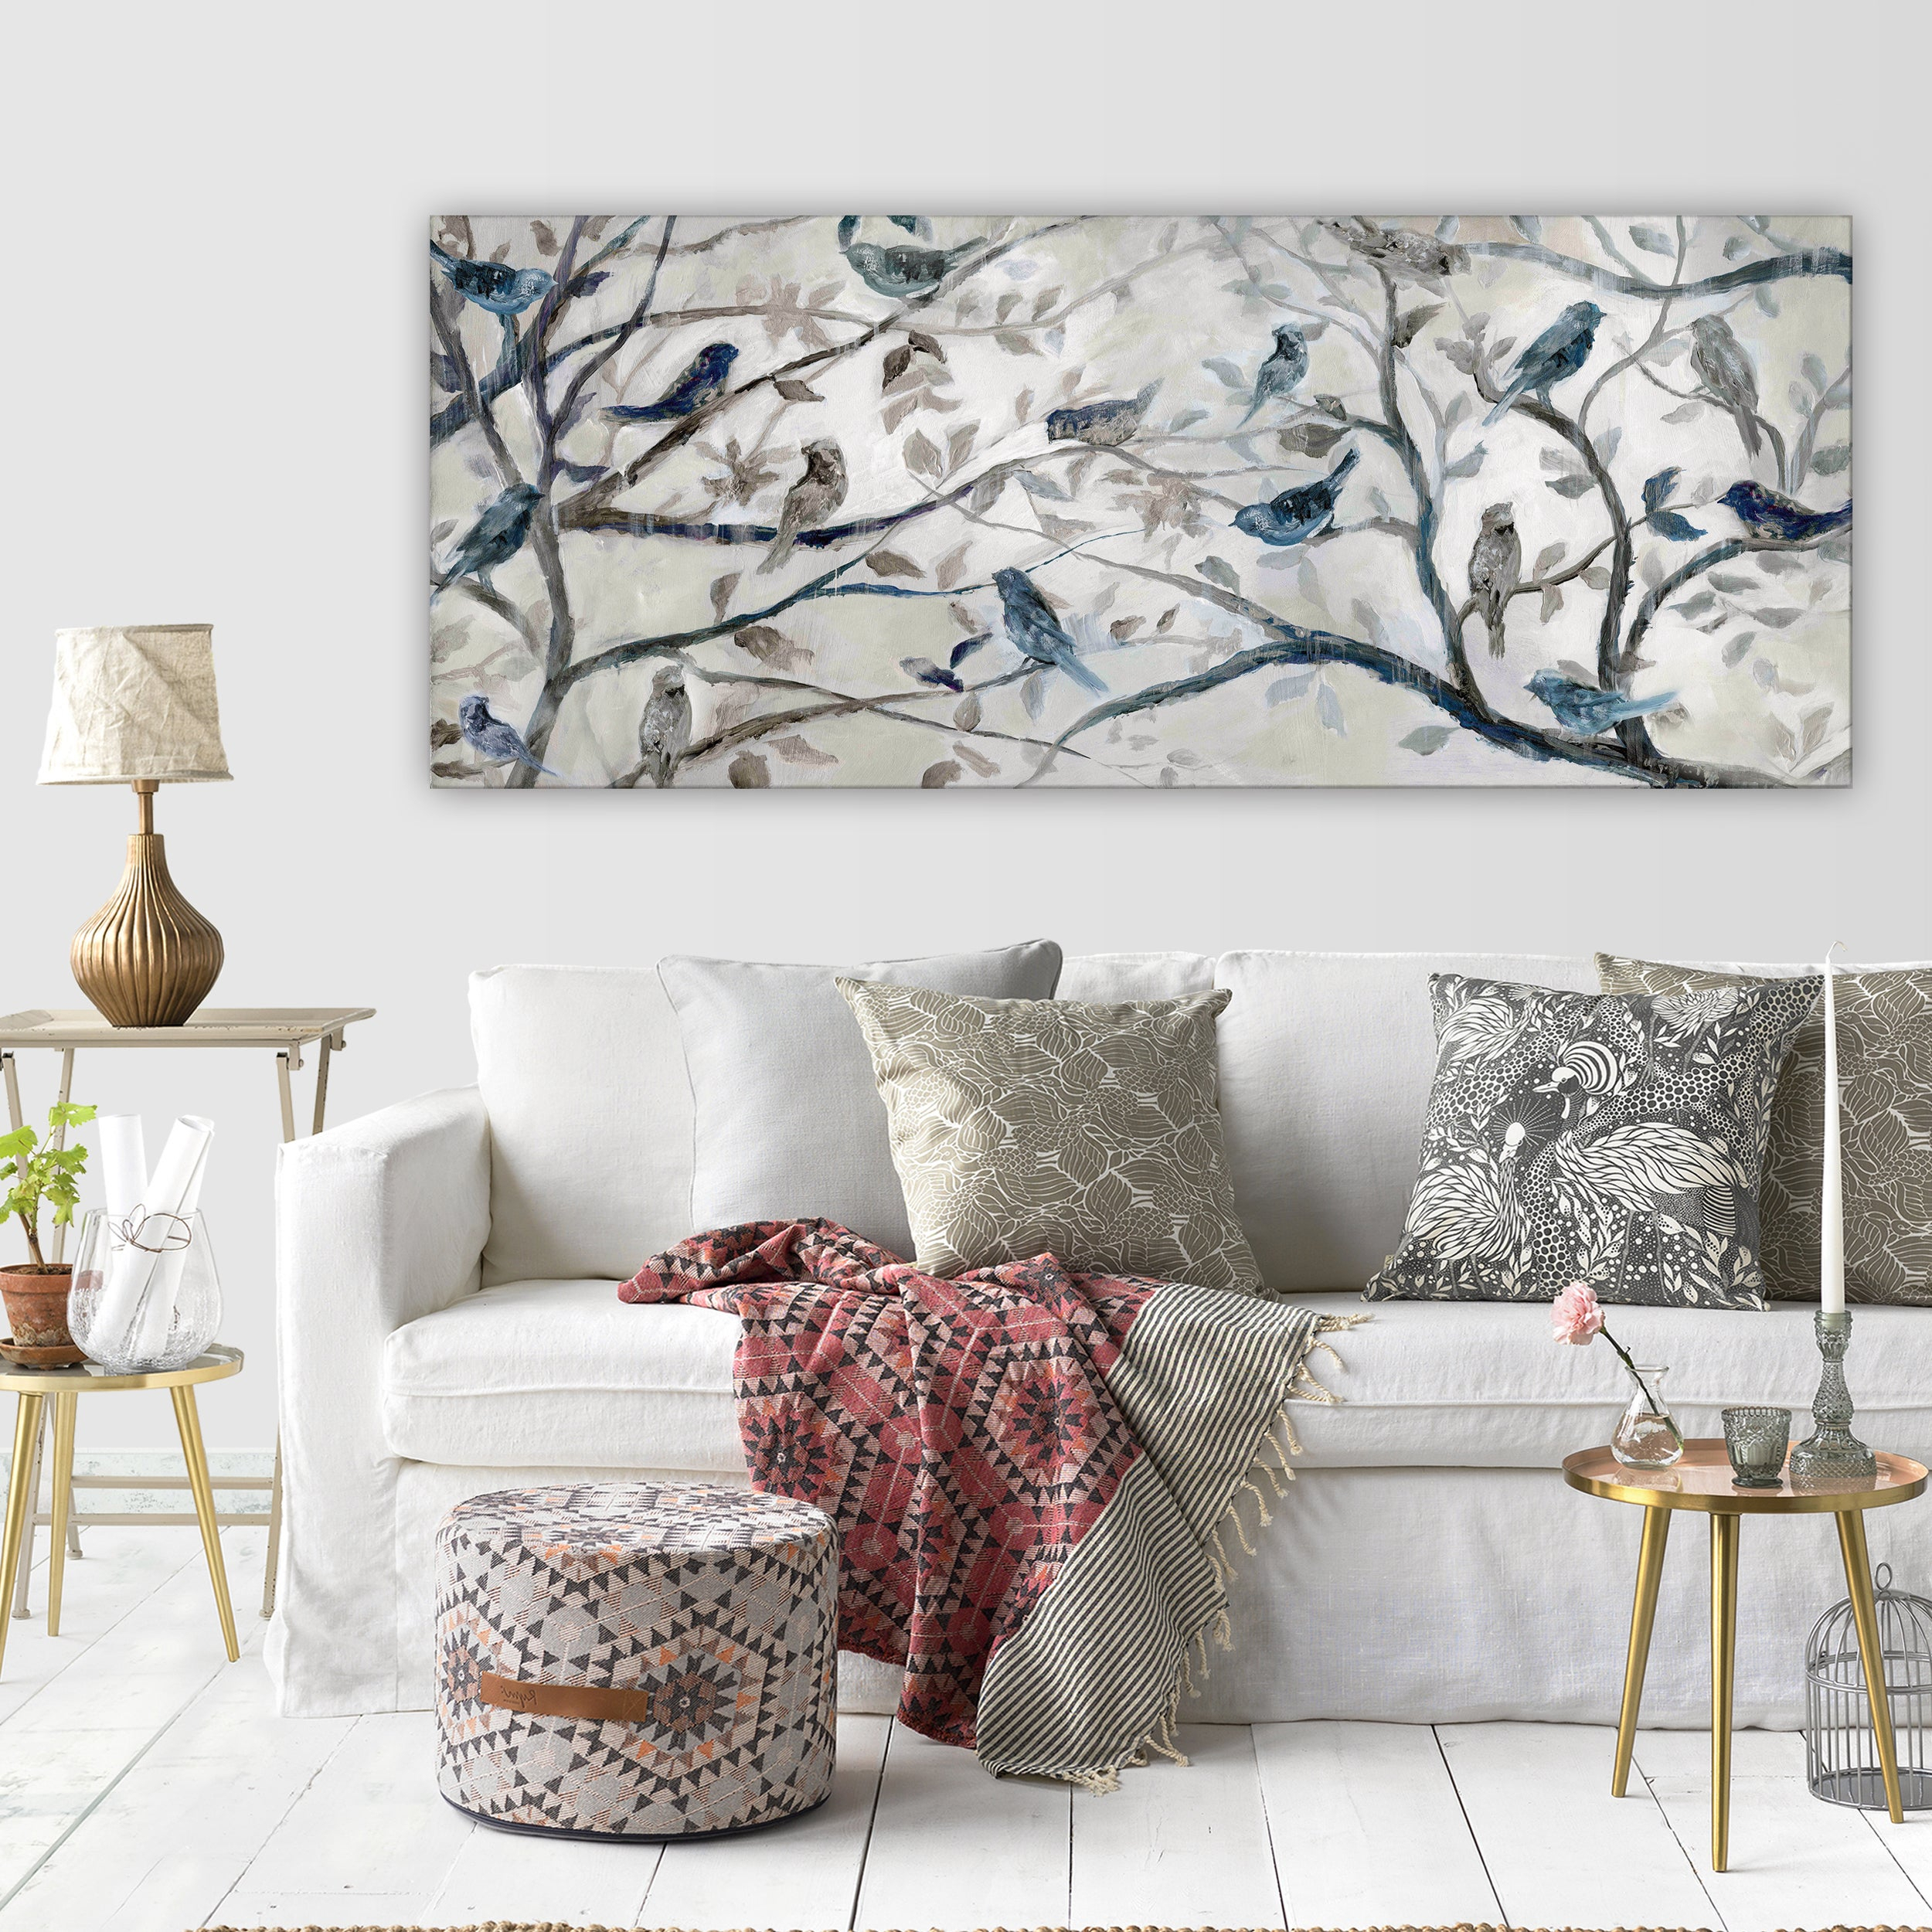 4 Piece Wall Decor Sets By Charlton Home Within Newest Shop Wexford Home 'morning Chorus' Gallery Wrapped Canvas Wall Art (View 20 of 20)